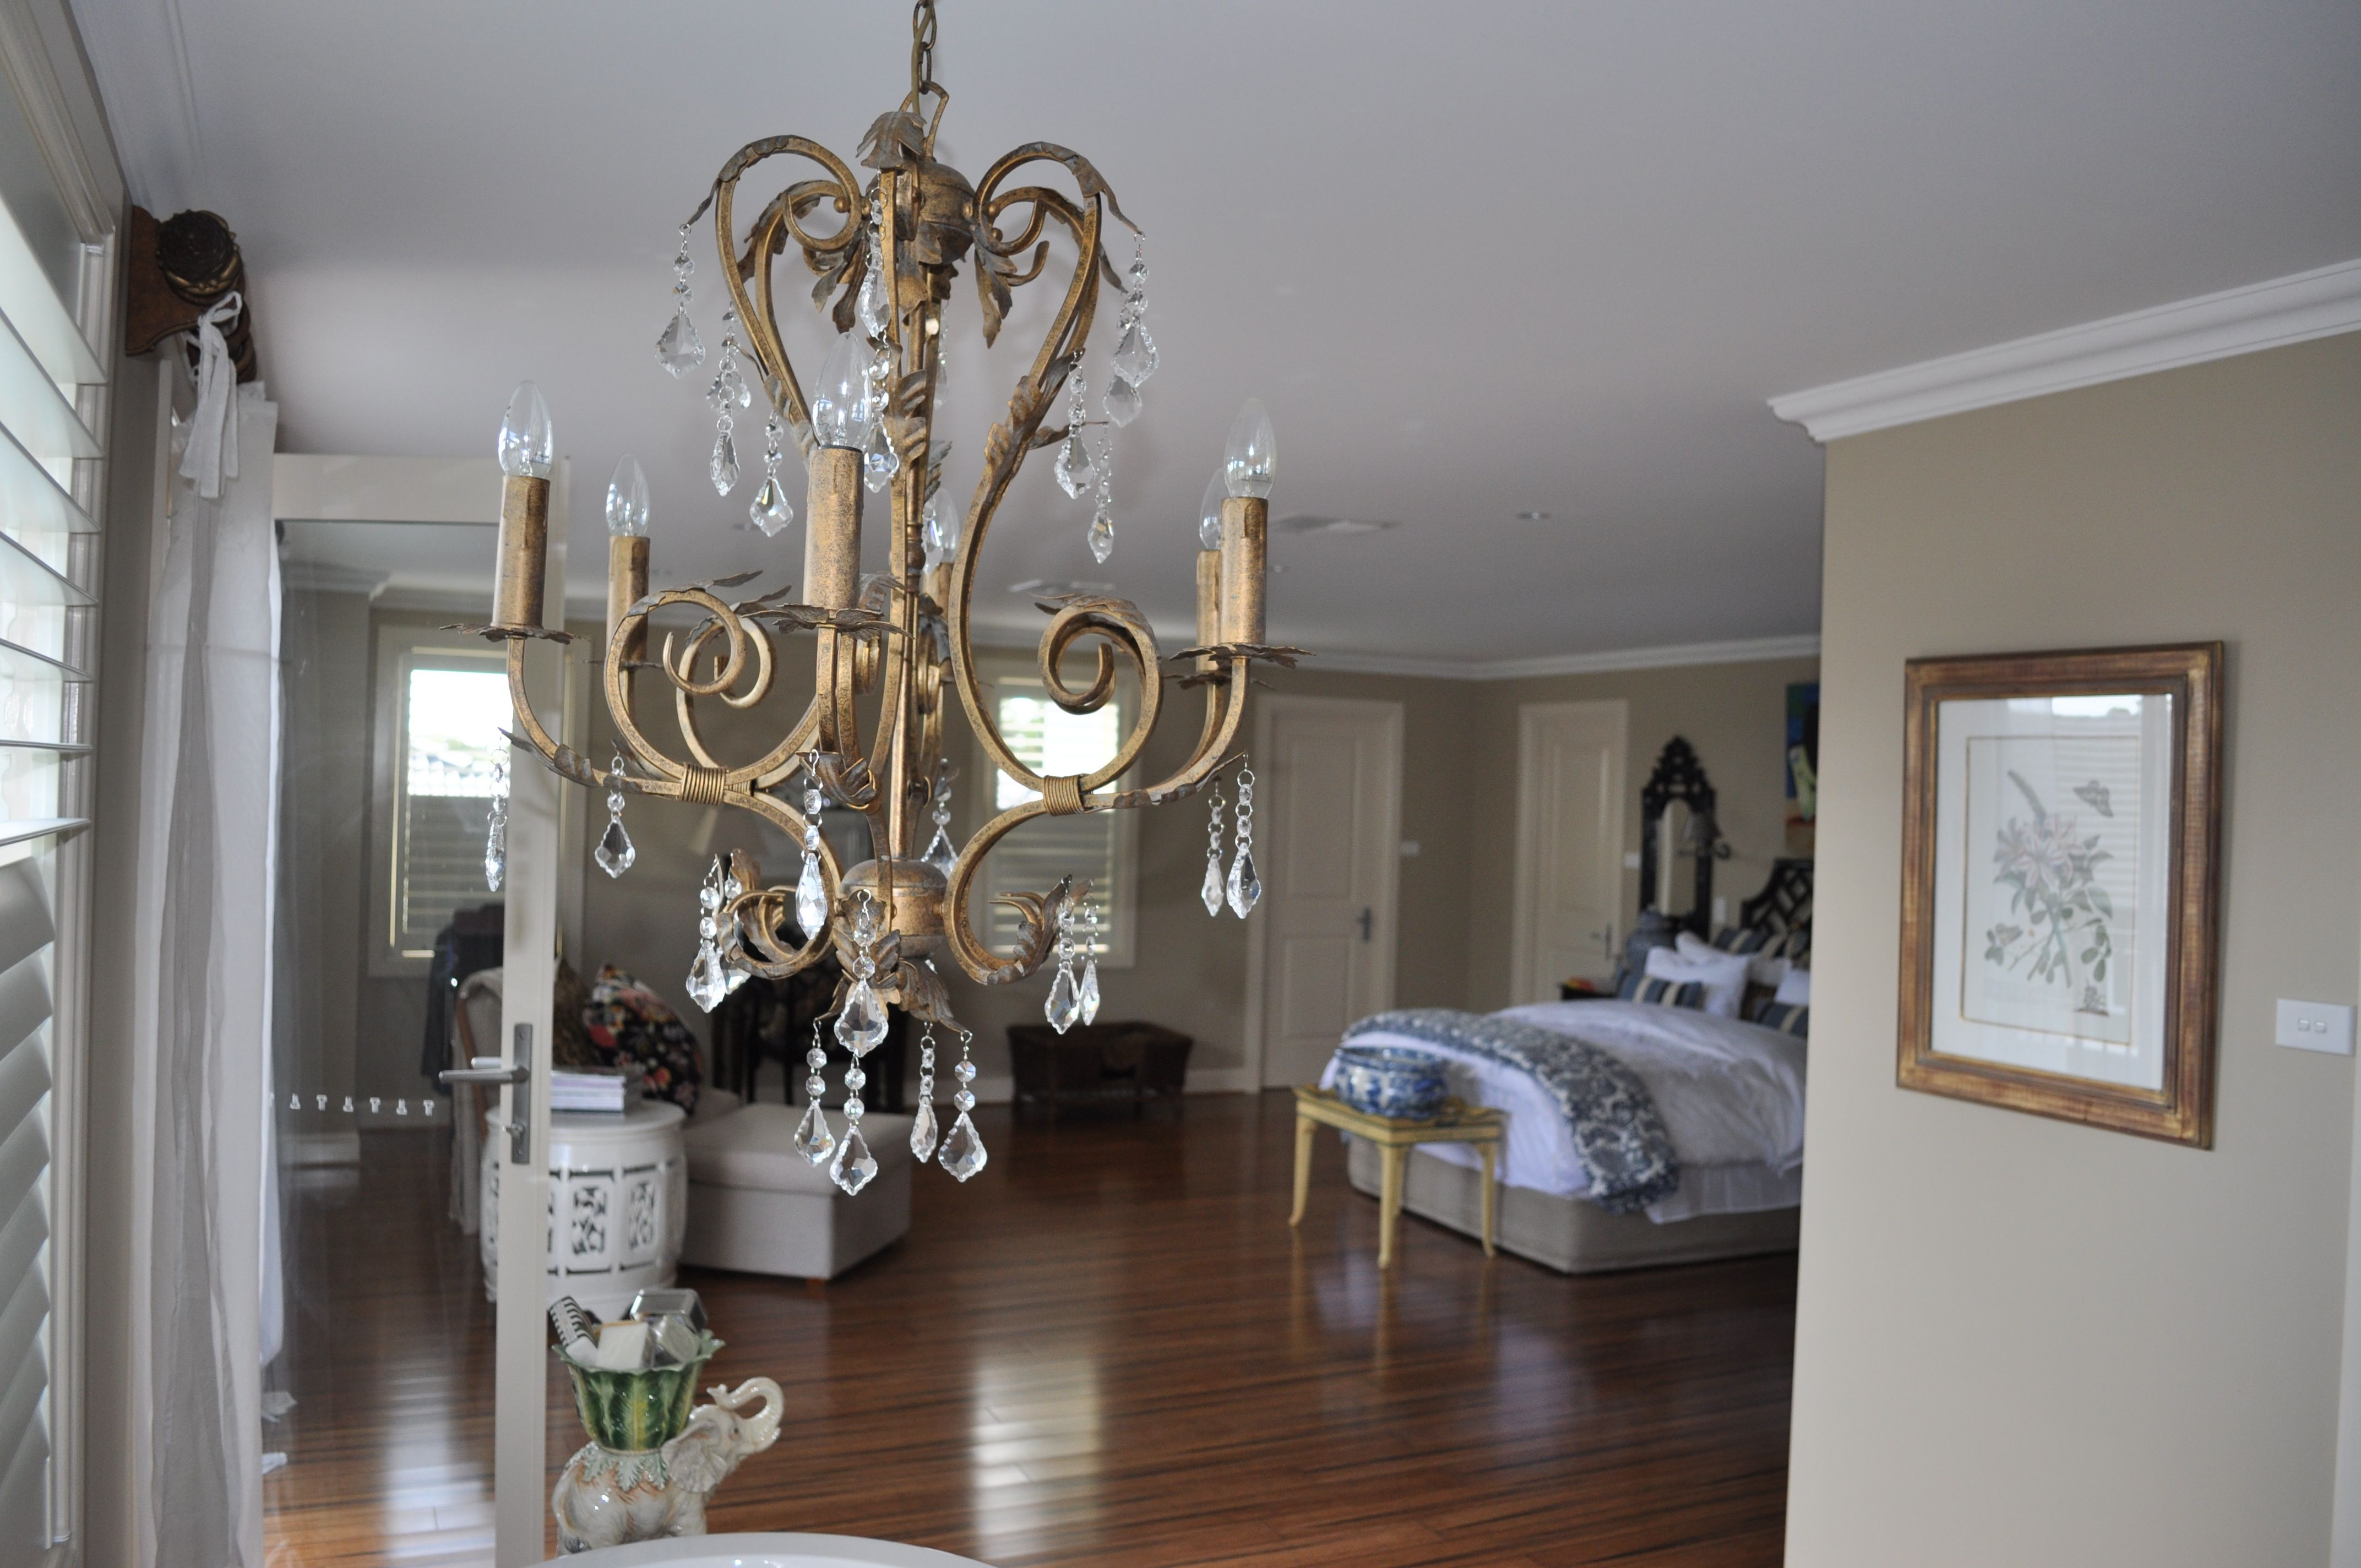 Get the hang of it, designed and styled by Susan Case Interiors